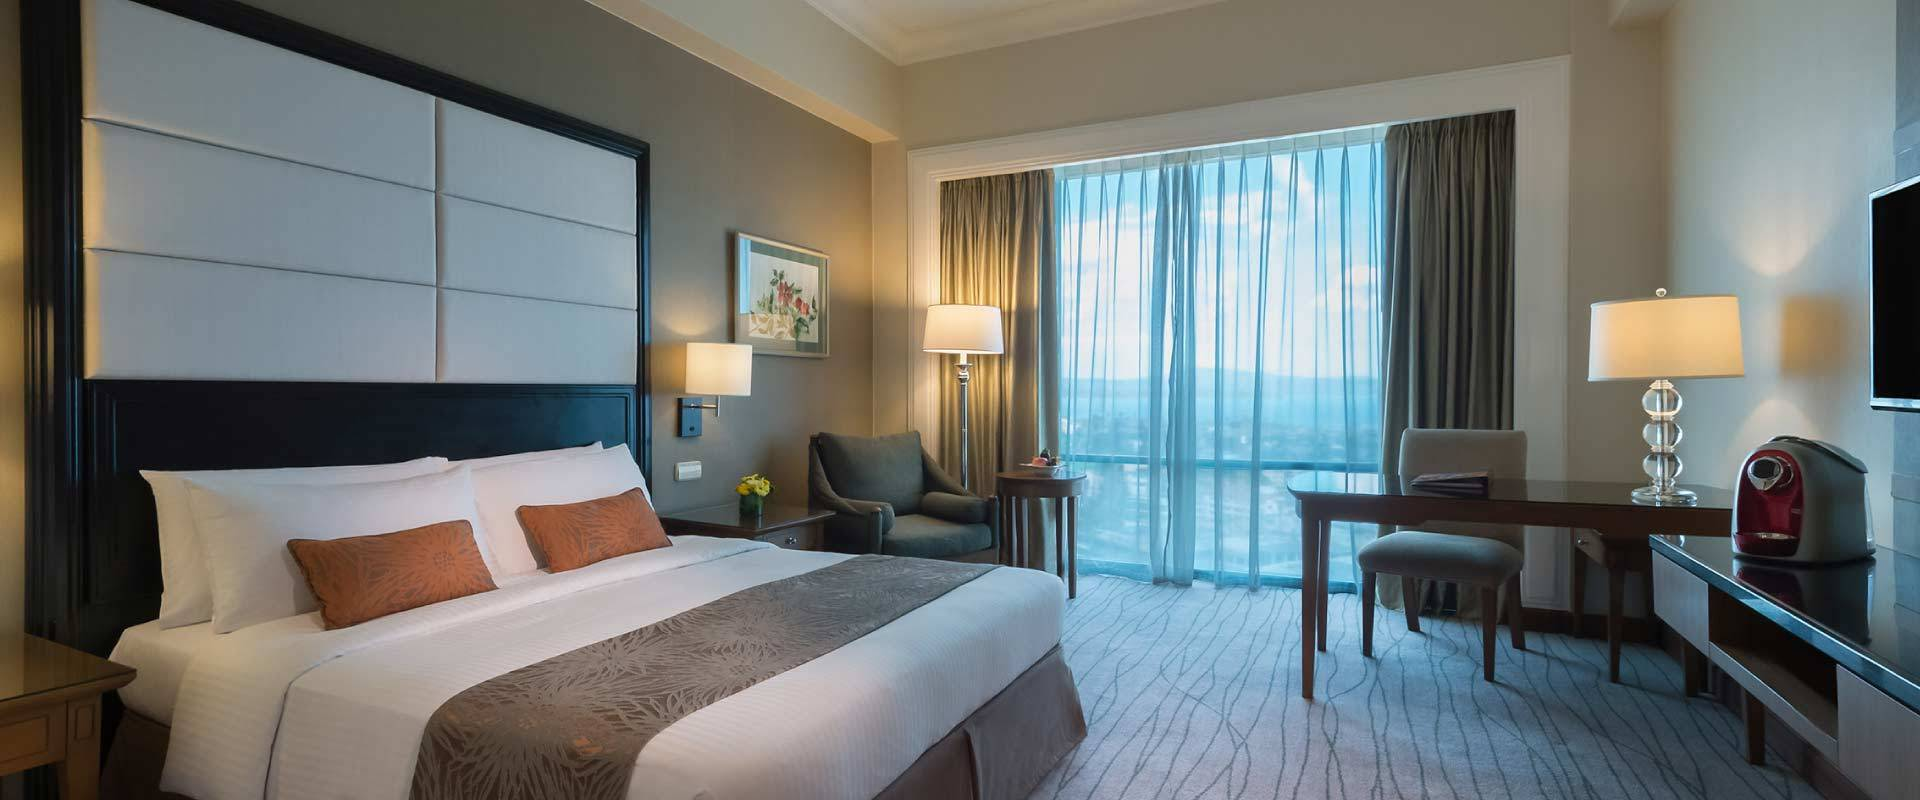 Rooms suites marco polo davao for Design hotel 69